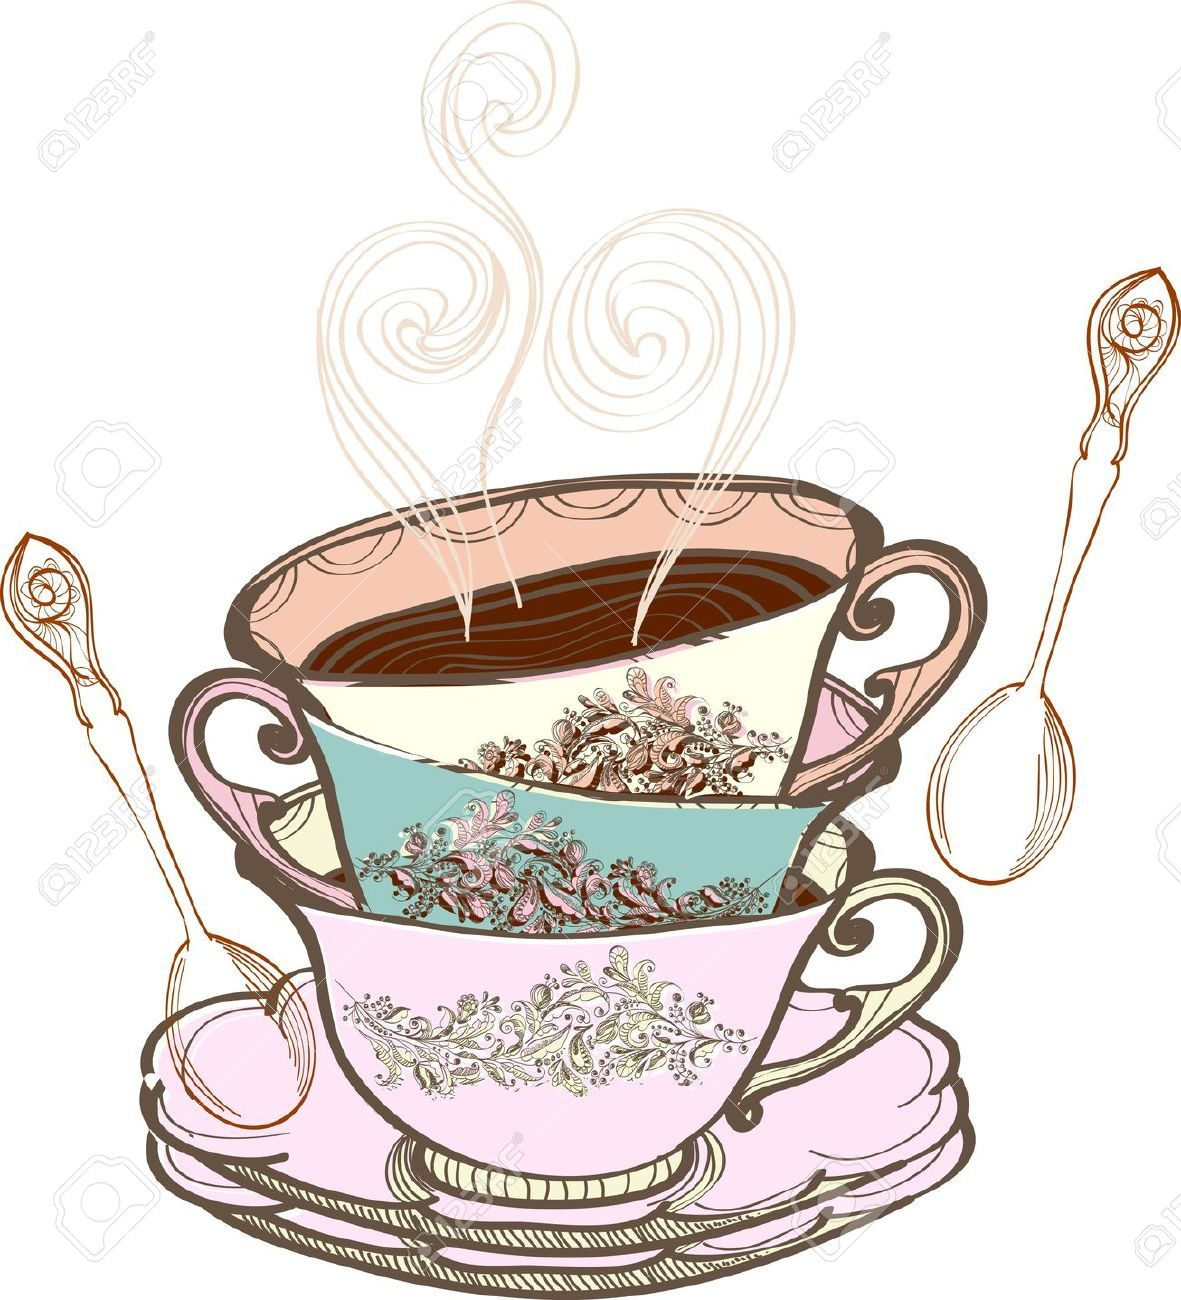 High tea images clipart black and white Afternoon tea clipart free. | Java Jive in 2019 | Tea cups, Cream ... black and white